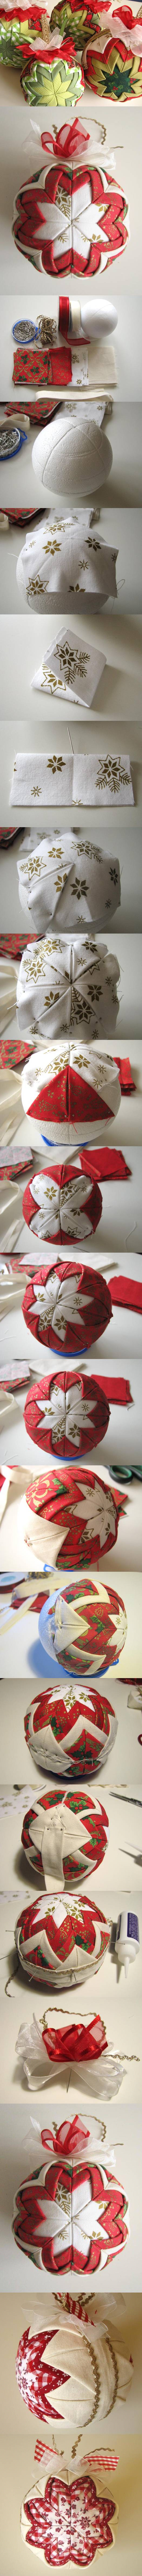 diy-patchwork-for-christmas Holiday Decoration Patchwork Ideas - Step by step